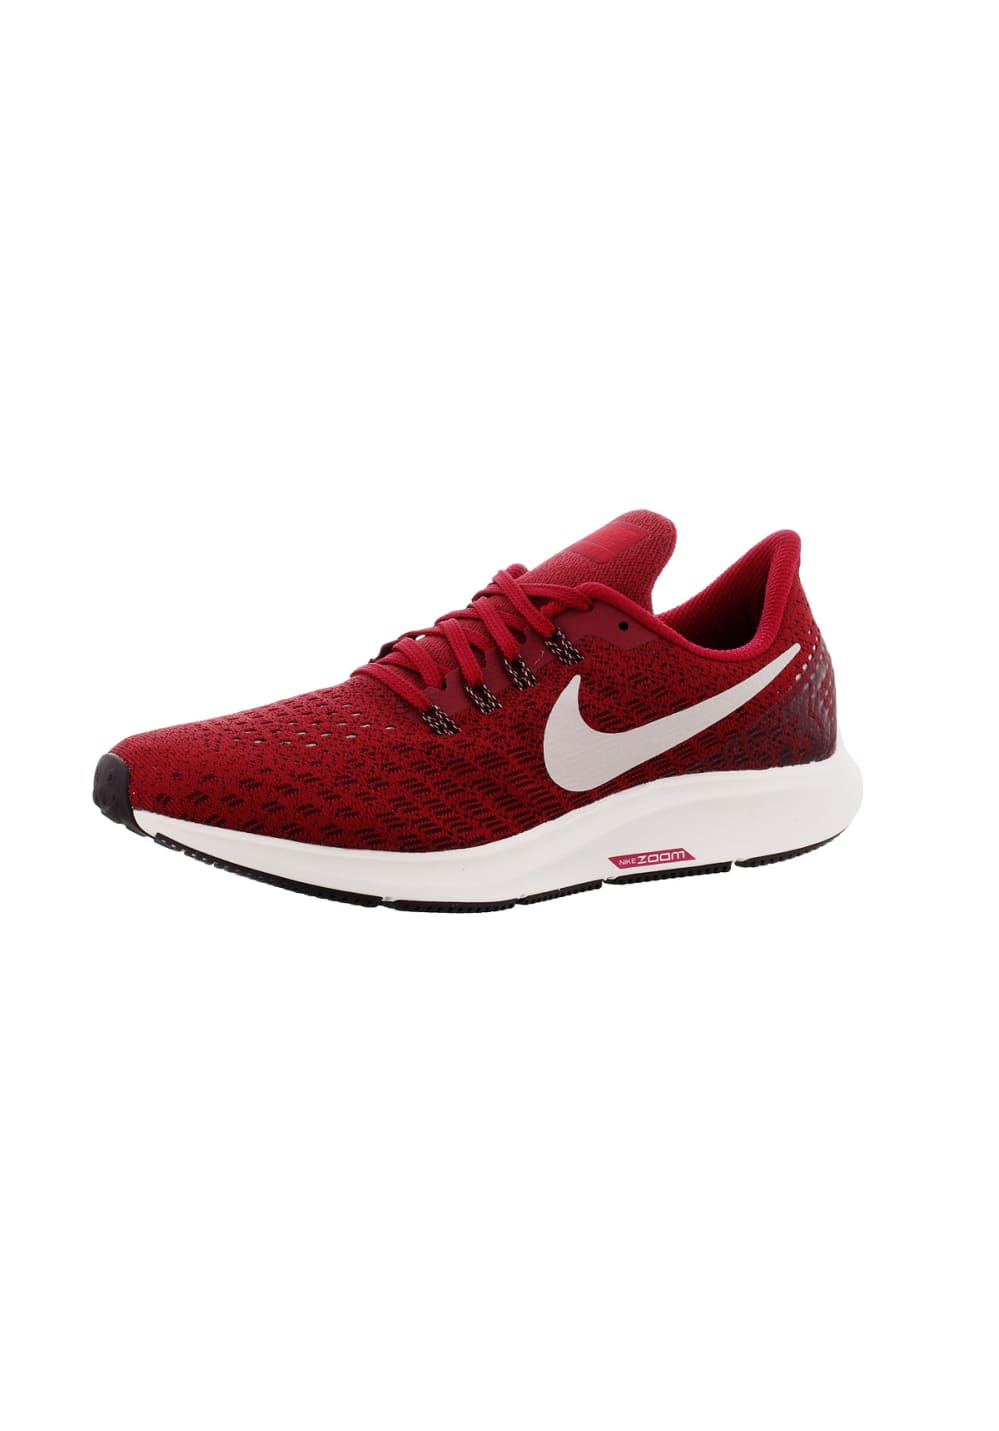 91deecd1801 Next. -60%. This product is currently out of stock. Nike. Air Zoom Pegasus  35 - Running shoes for Women